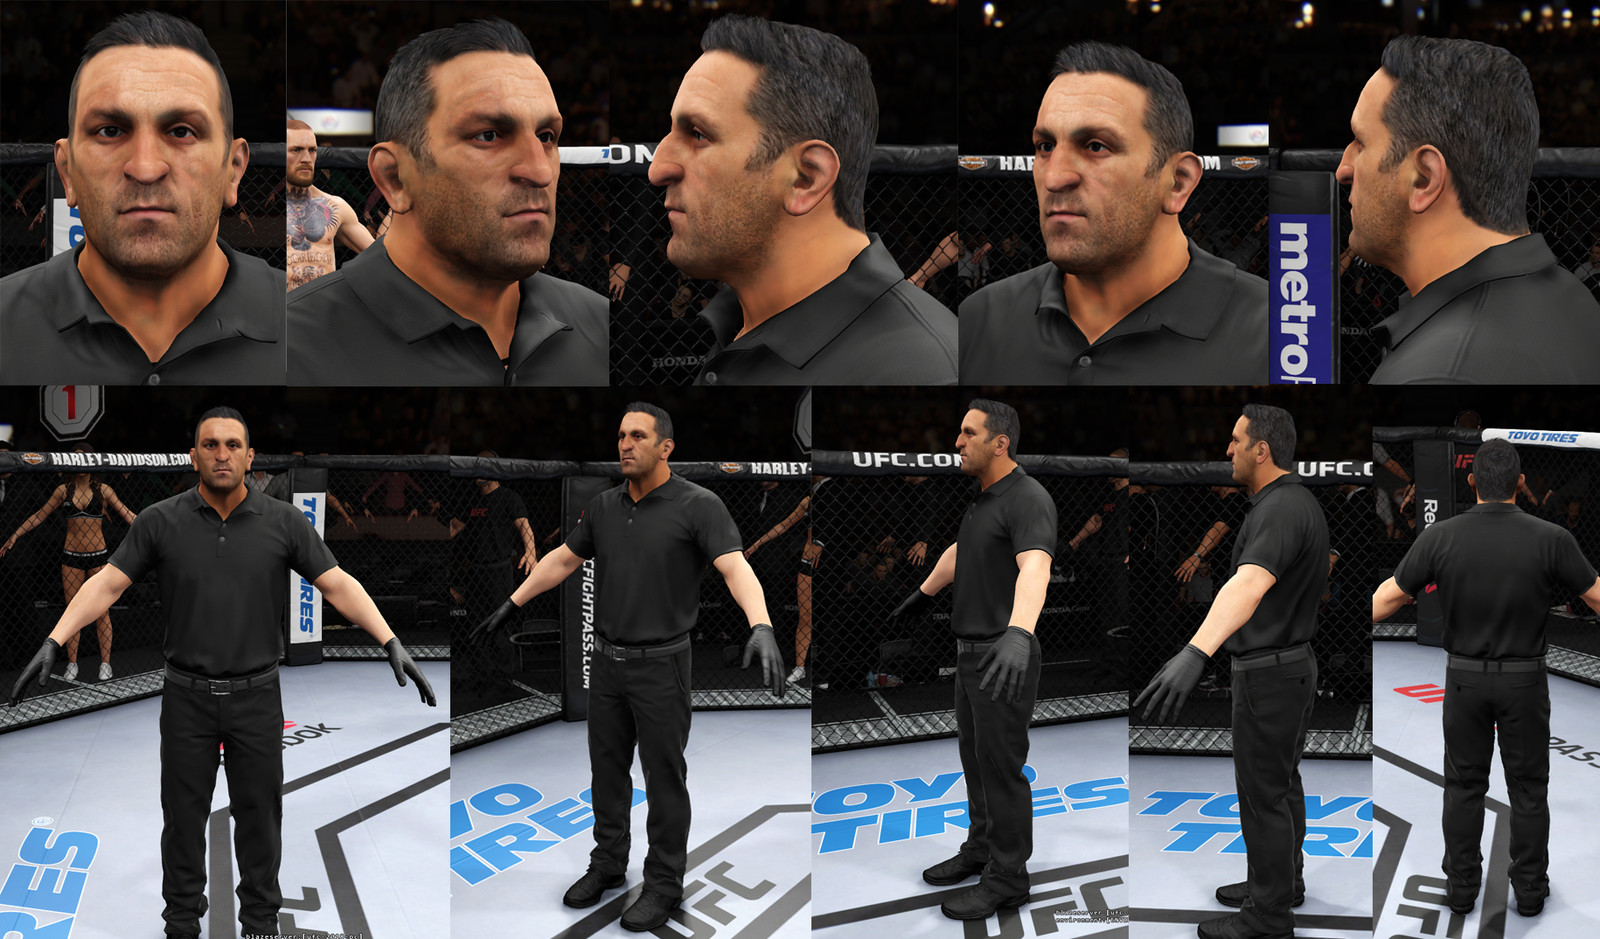 Secondary Character UFC3